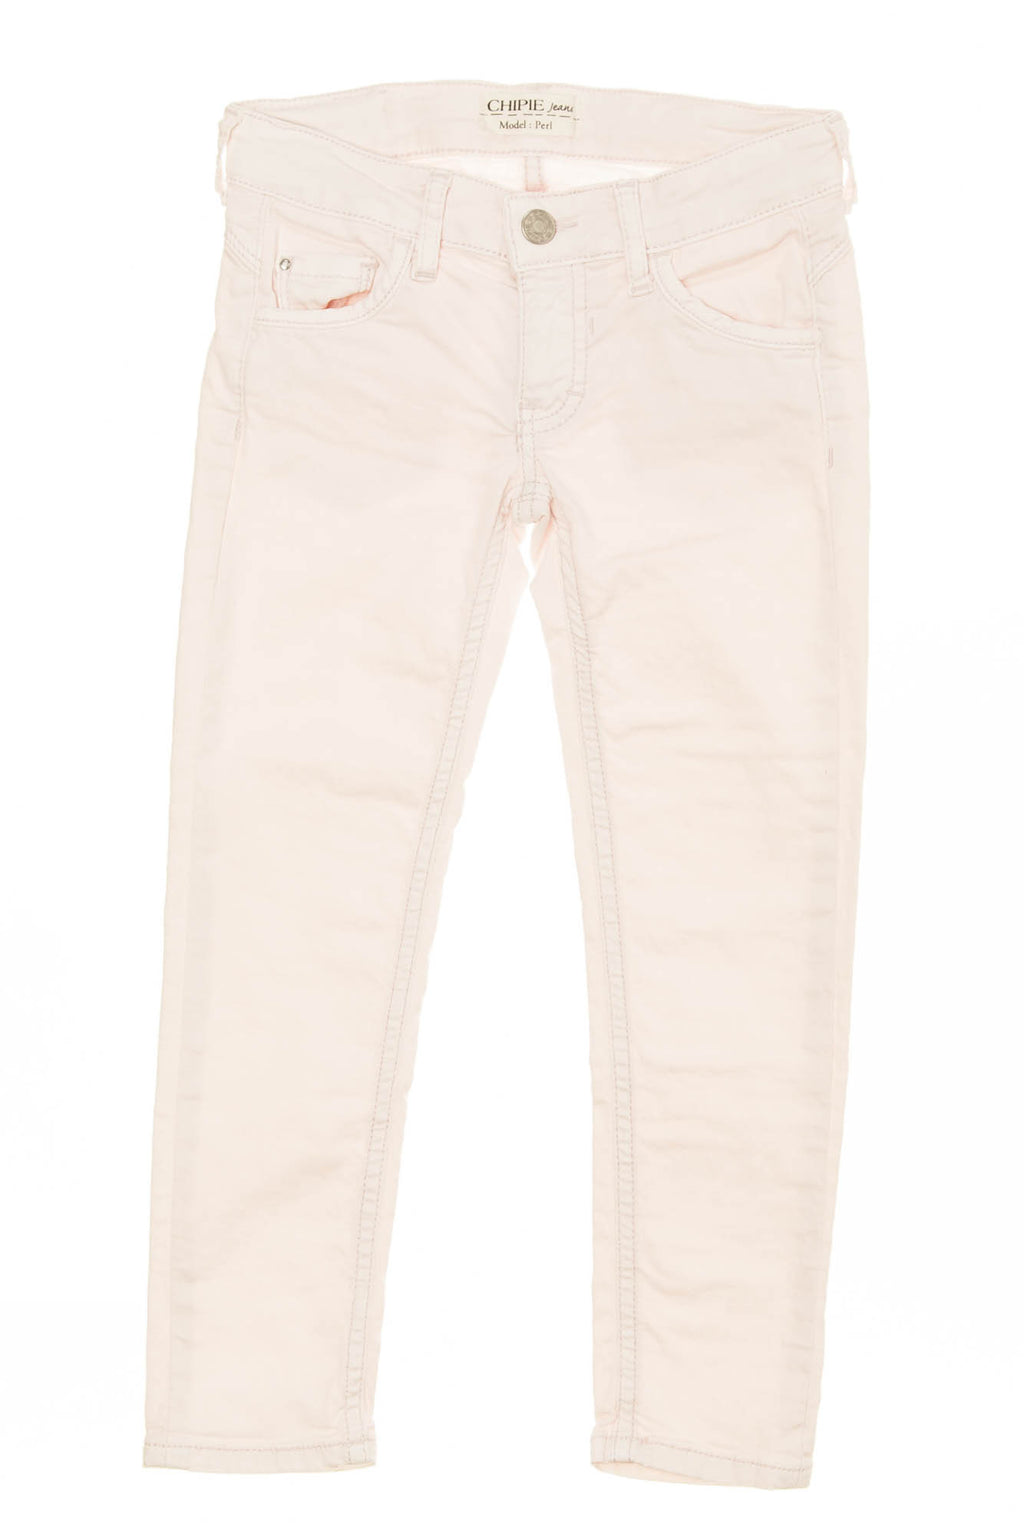 "Chipie Jeans - ""Perl"" Light Pink Jeans - 6"